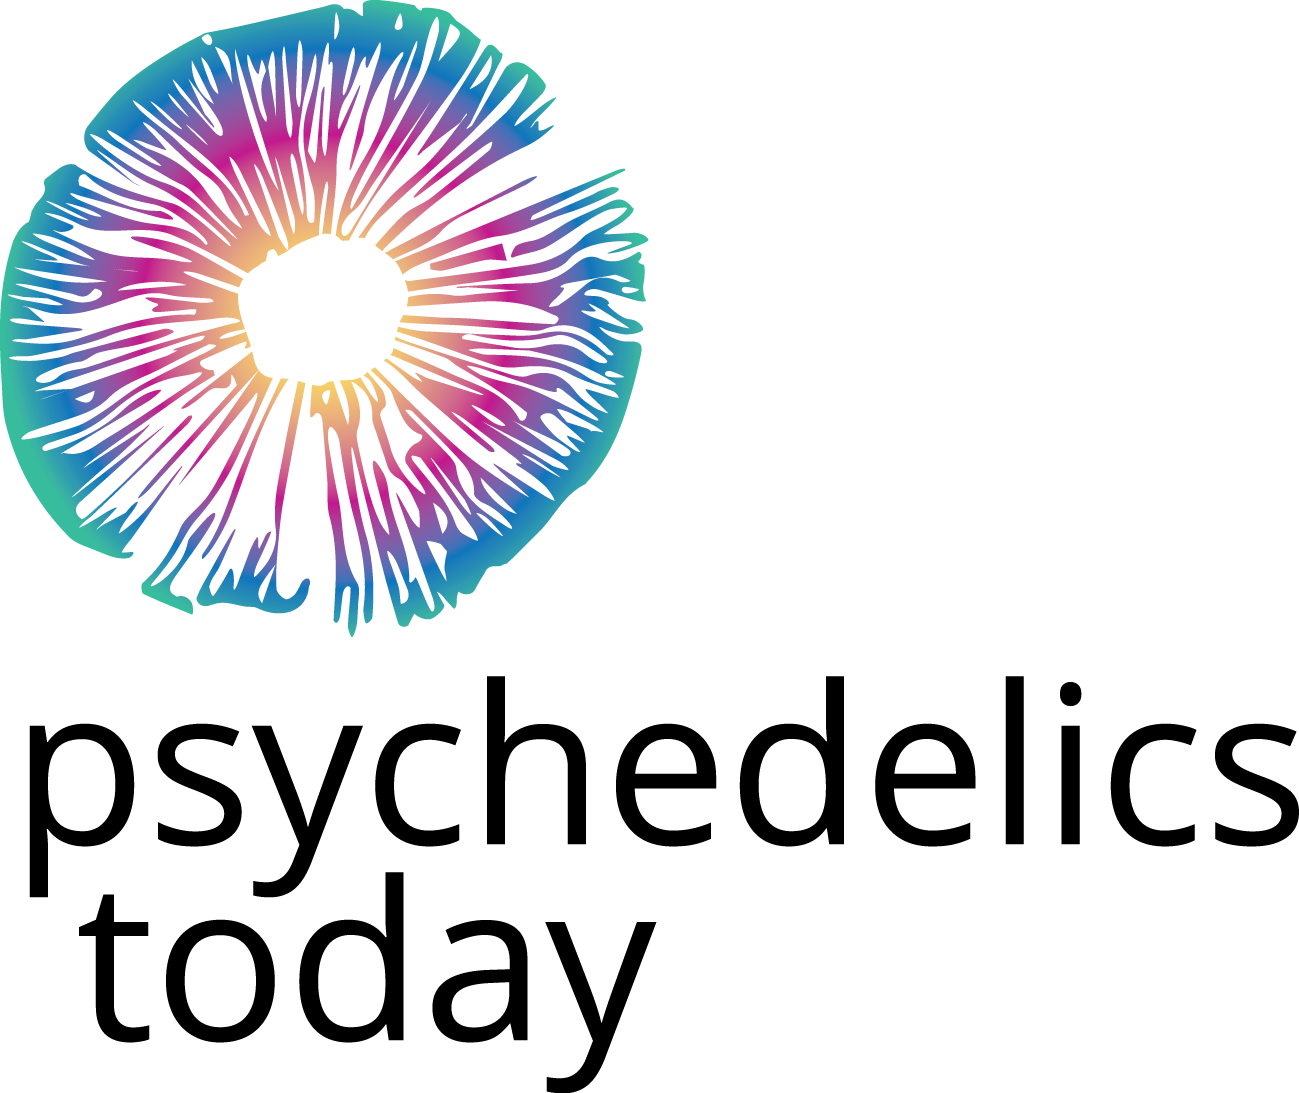 PsychedelicsToday_logo_vertical_color_LightBackground